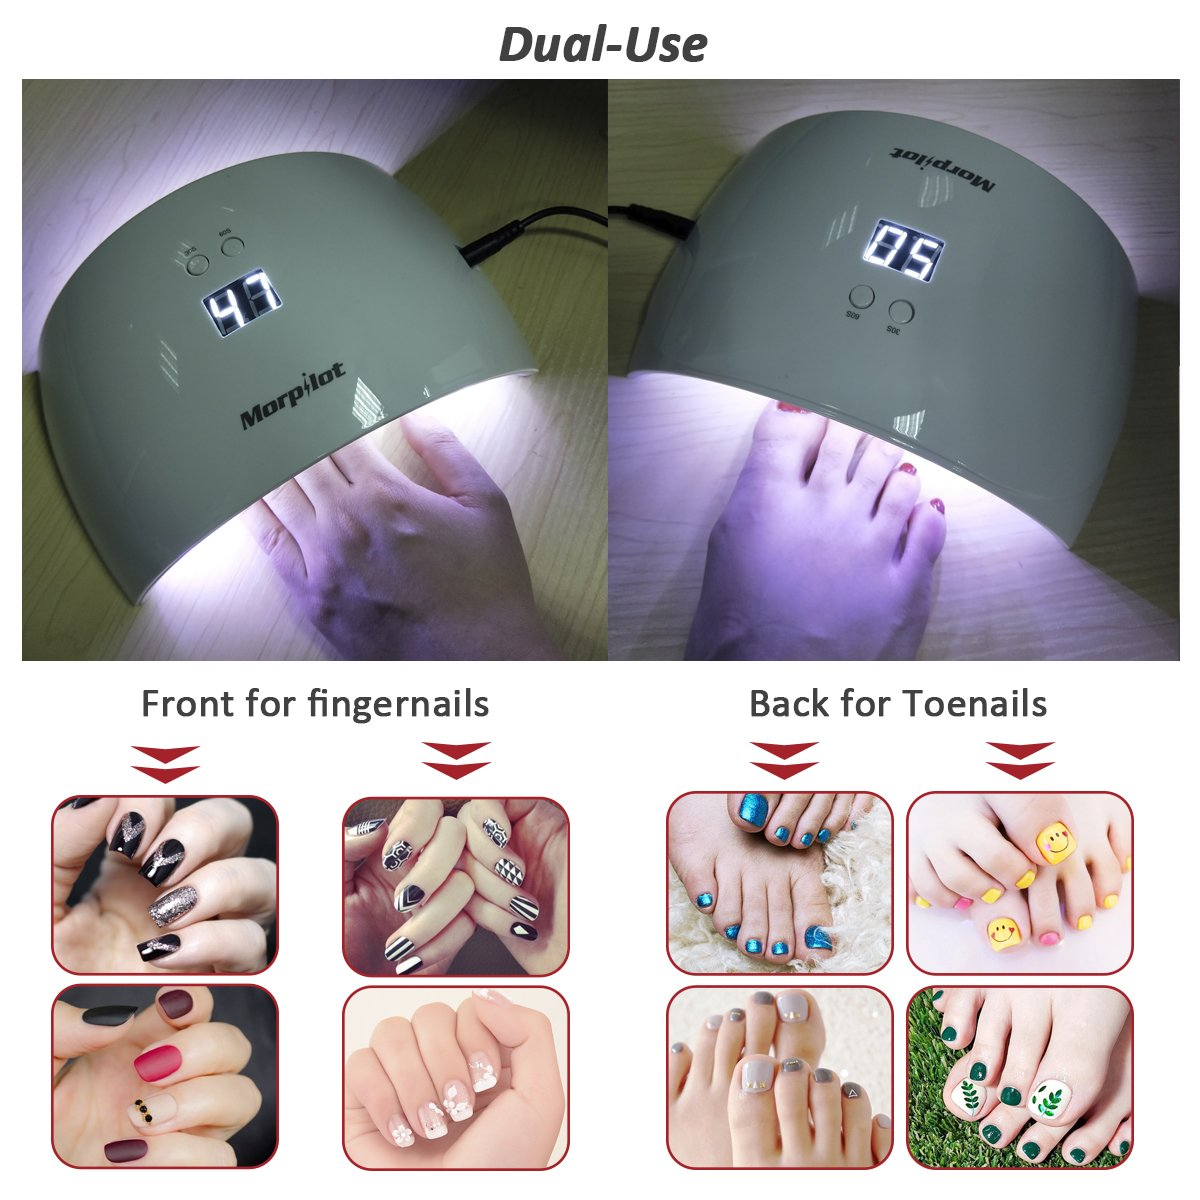 Morpilot 9X 24W LED UV Nail Dryer Curing Lamp Gel Polish Light UV Gel Nail Art Lamp With Sensor